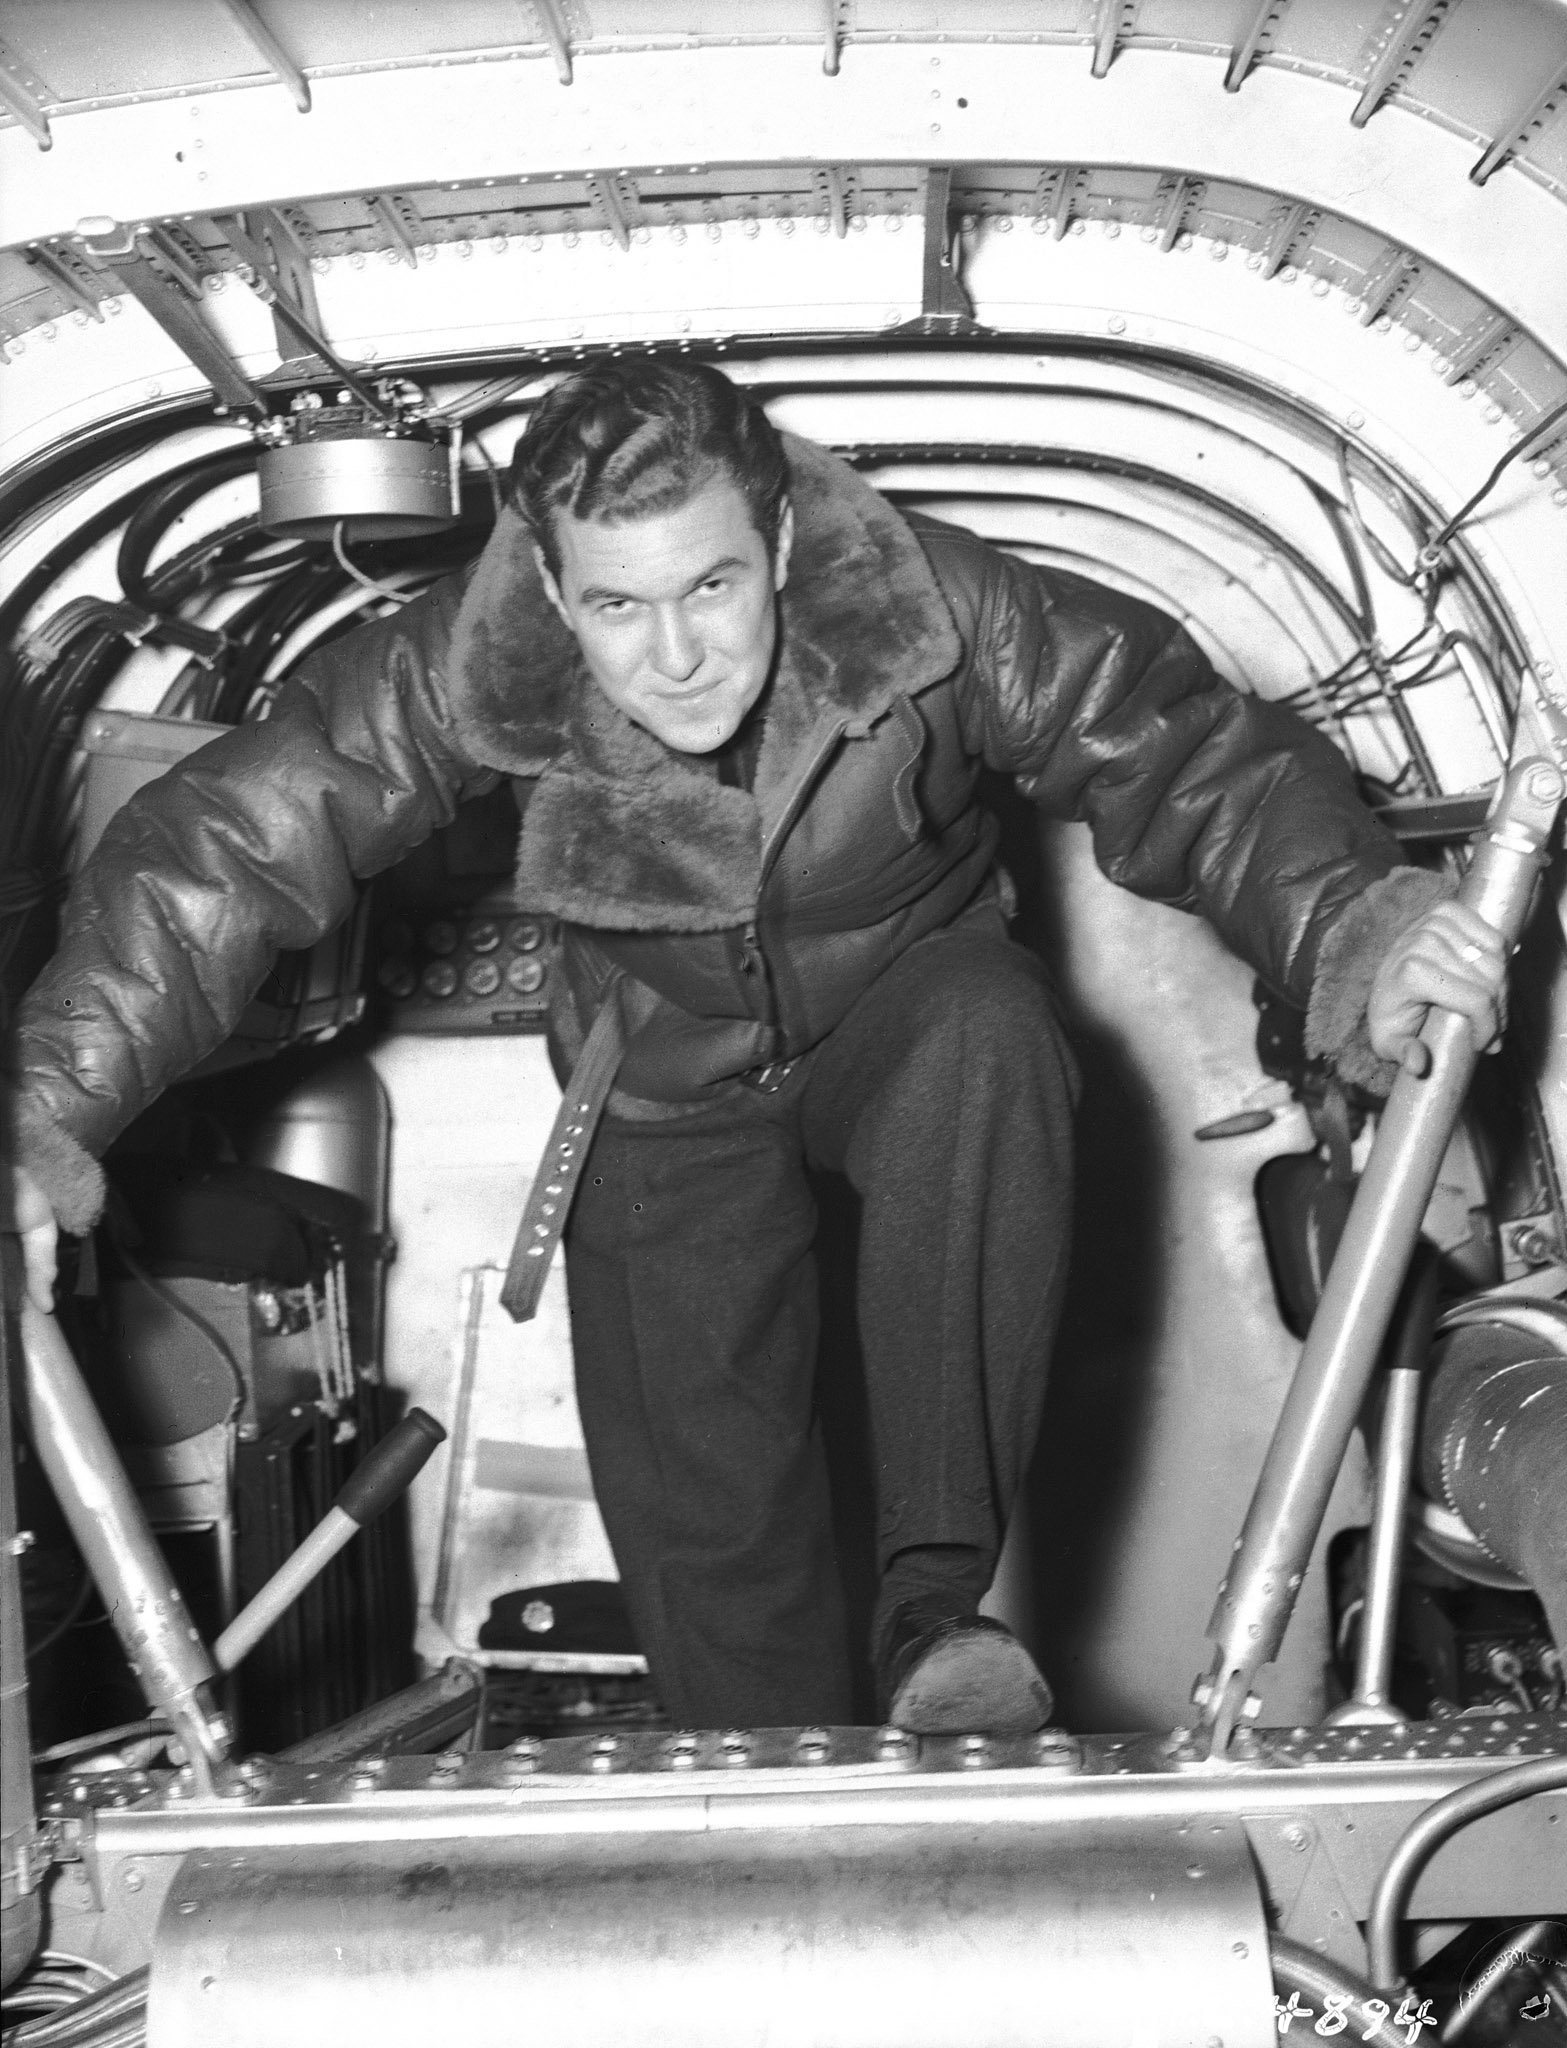 "Pilot Officer Jack Watts climbs out of a four-engine bomber at an RAF station in England on December 17, 1941. The original caption reads: ""Jack is an observer with the RCAF, trained at Toronto, Malton, Jarvis and Rivers. He is an 'old boy' of Delta Collegiate, where he was outstanding in basketball, track and football. Previous to the war he worked in the Firestone Plant, Hamilton. He has had nine trips over enemy occupied territory."" PHOTO: DND Archives, PL-4894"